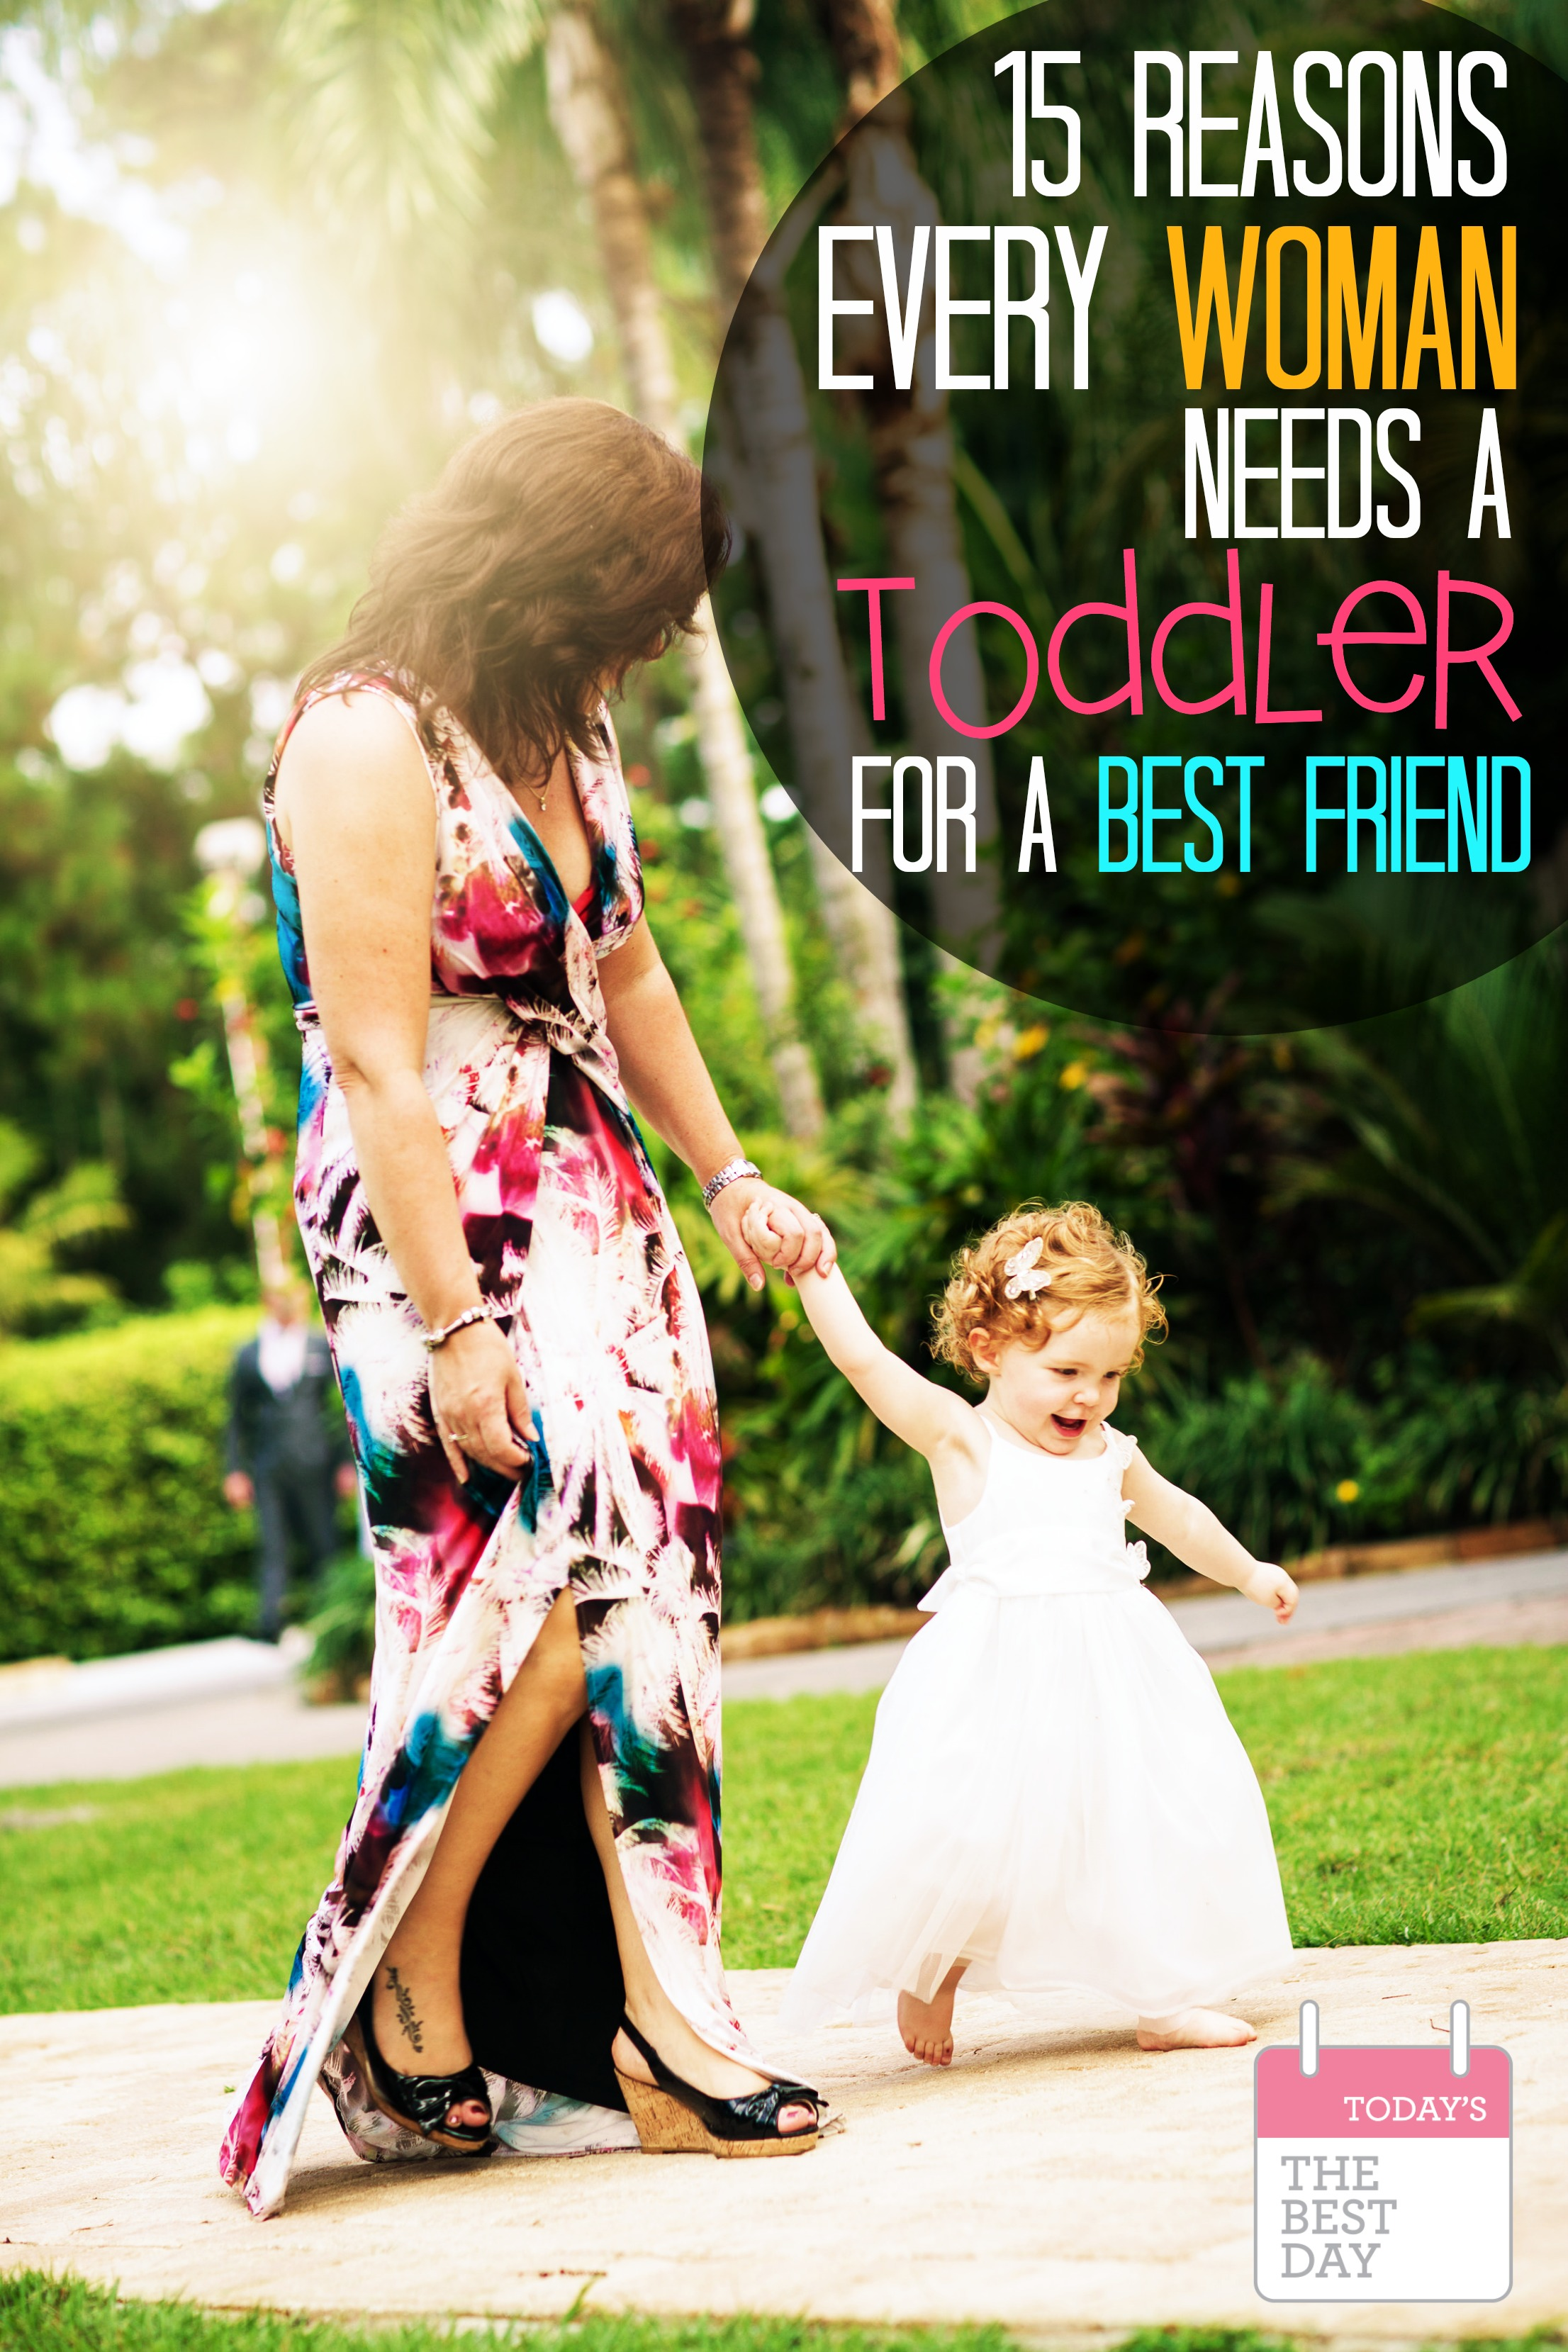 15 Reasons Every Woman Needs A Toddler For A Best Friend So Cute